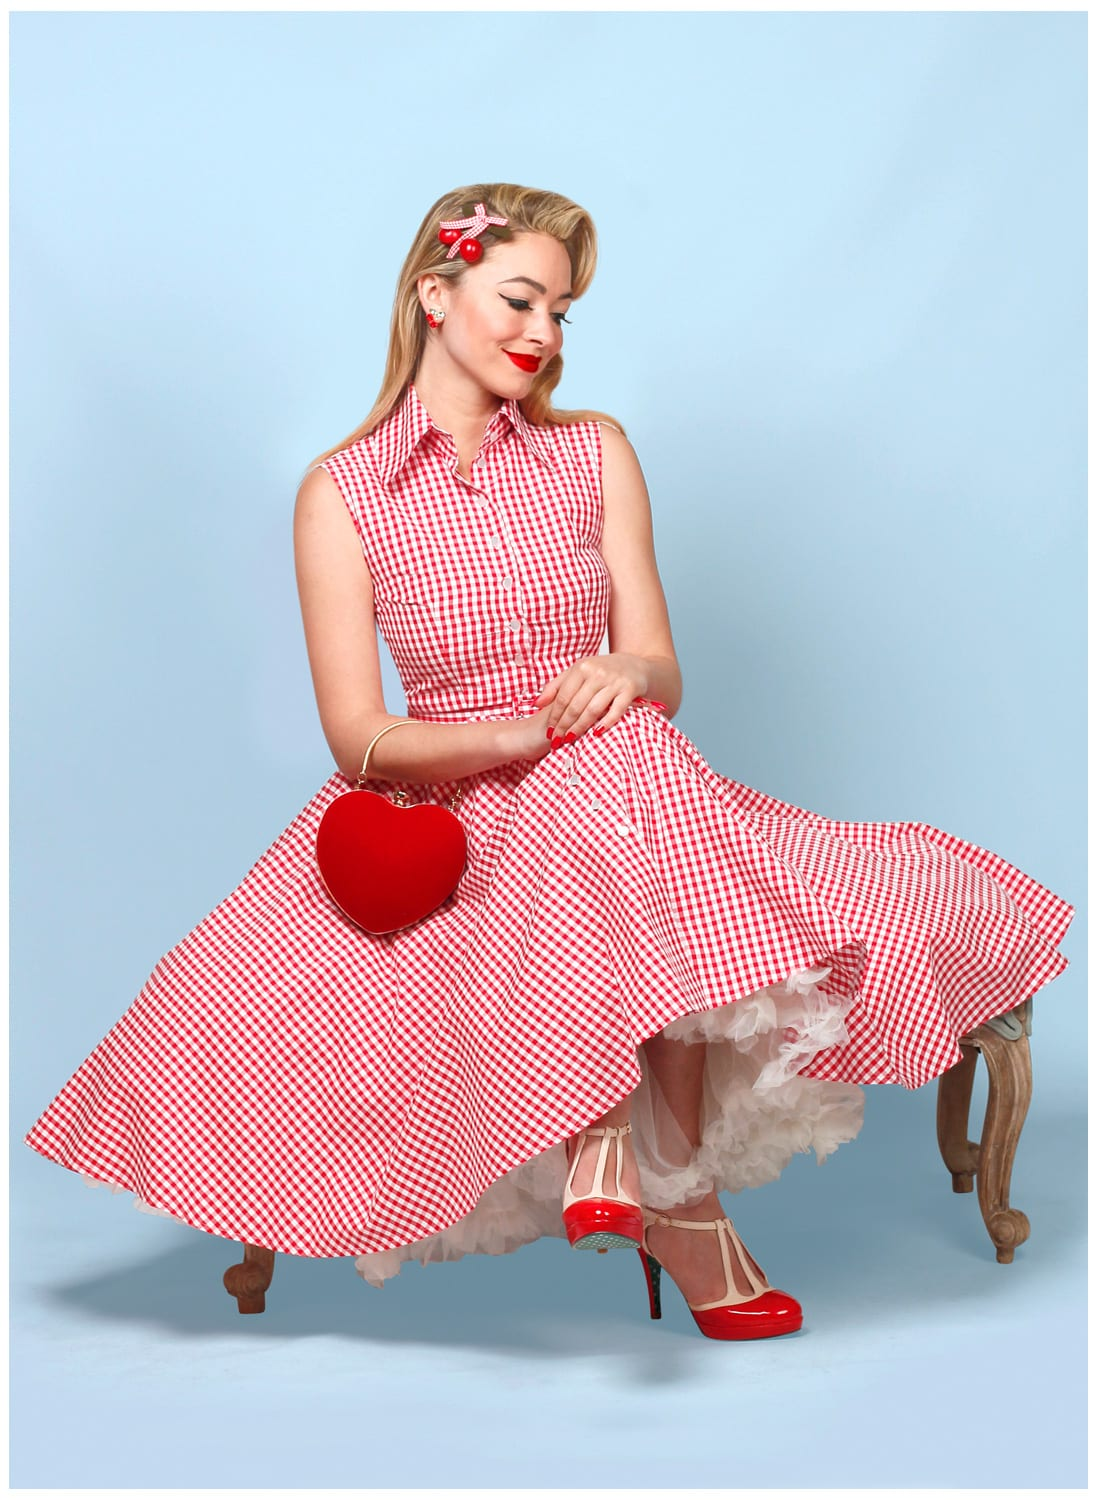 30- summer women vintage 50s country girl style gingham swing shirt dress in red rockabilly pinup tank dresses plus size vestido